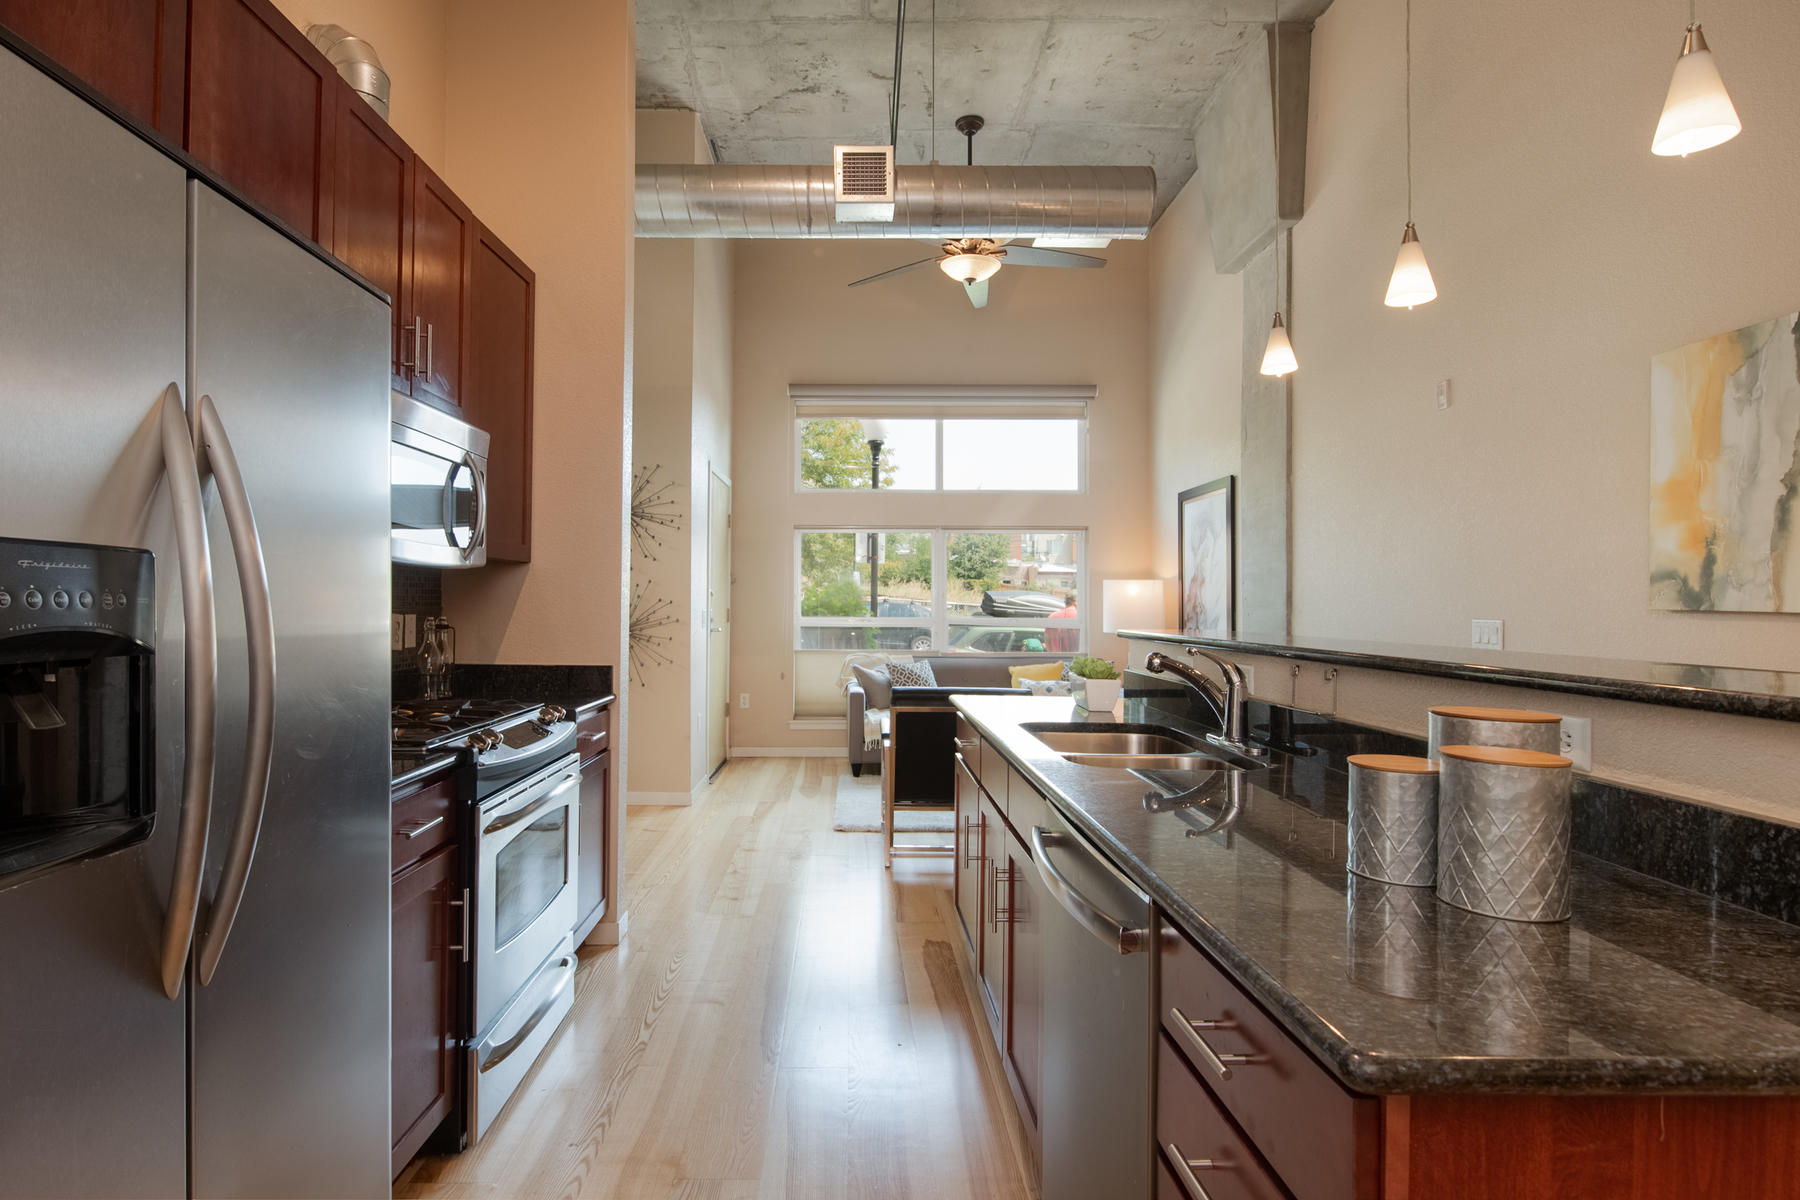 Additional photo for property listing at Fabulous Condo with A Location That's Hard To Beat! 2518 16th St Denver, Colorado 80211 United States